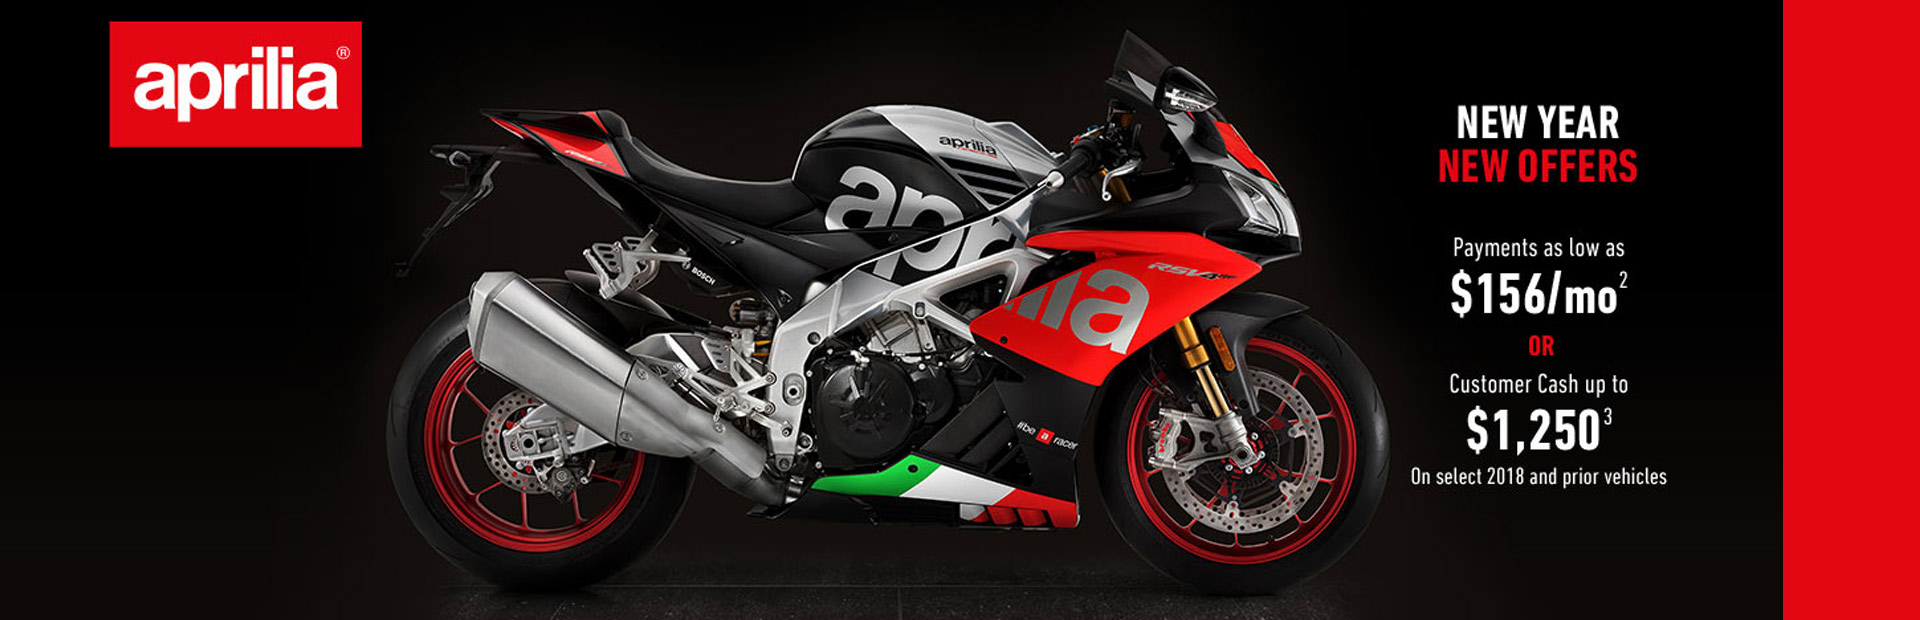 New Season Specials From Aprilia